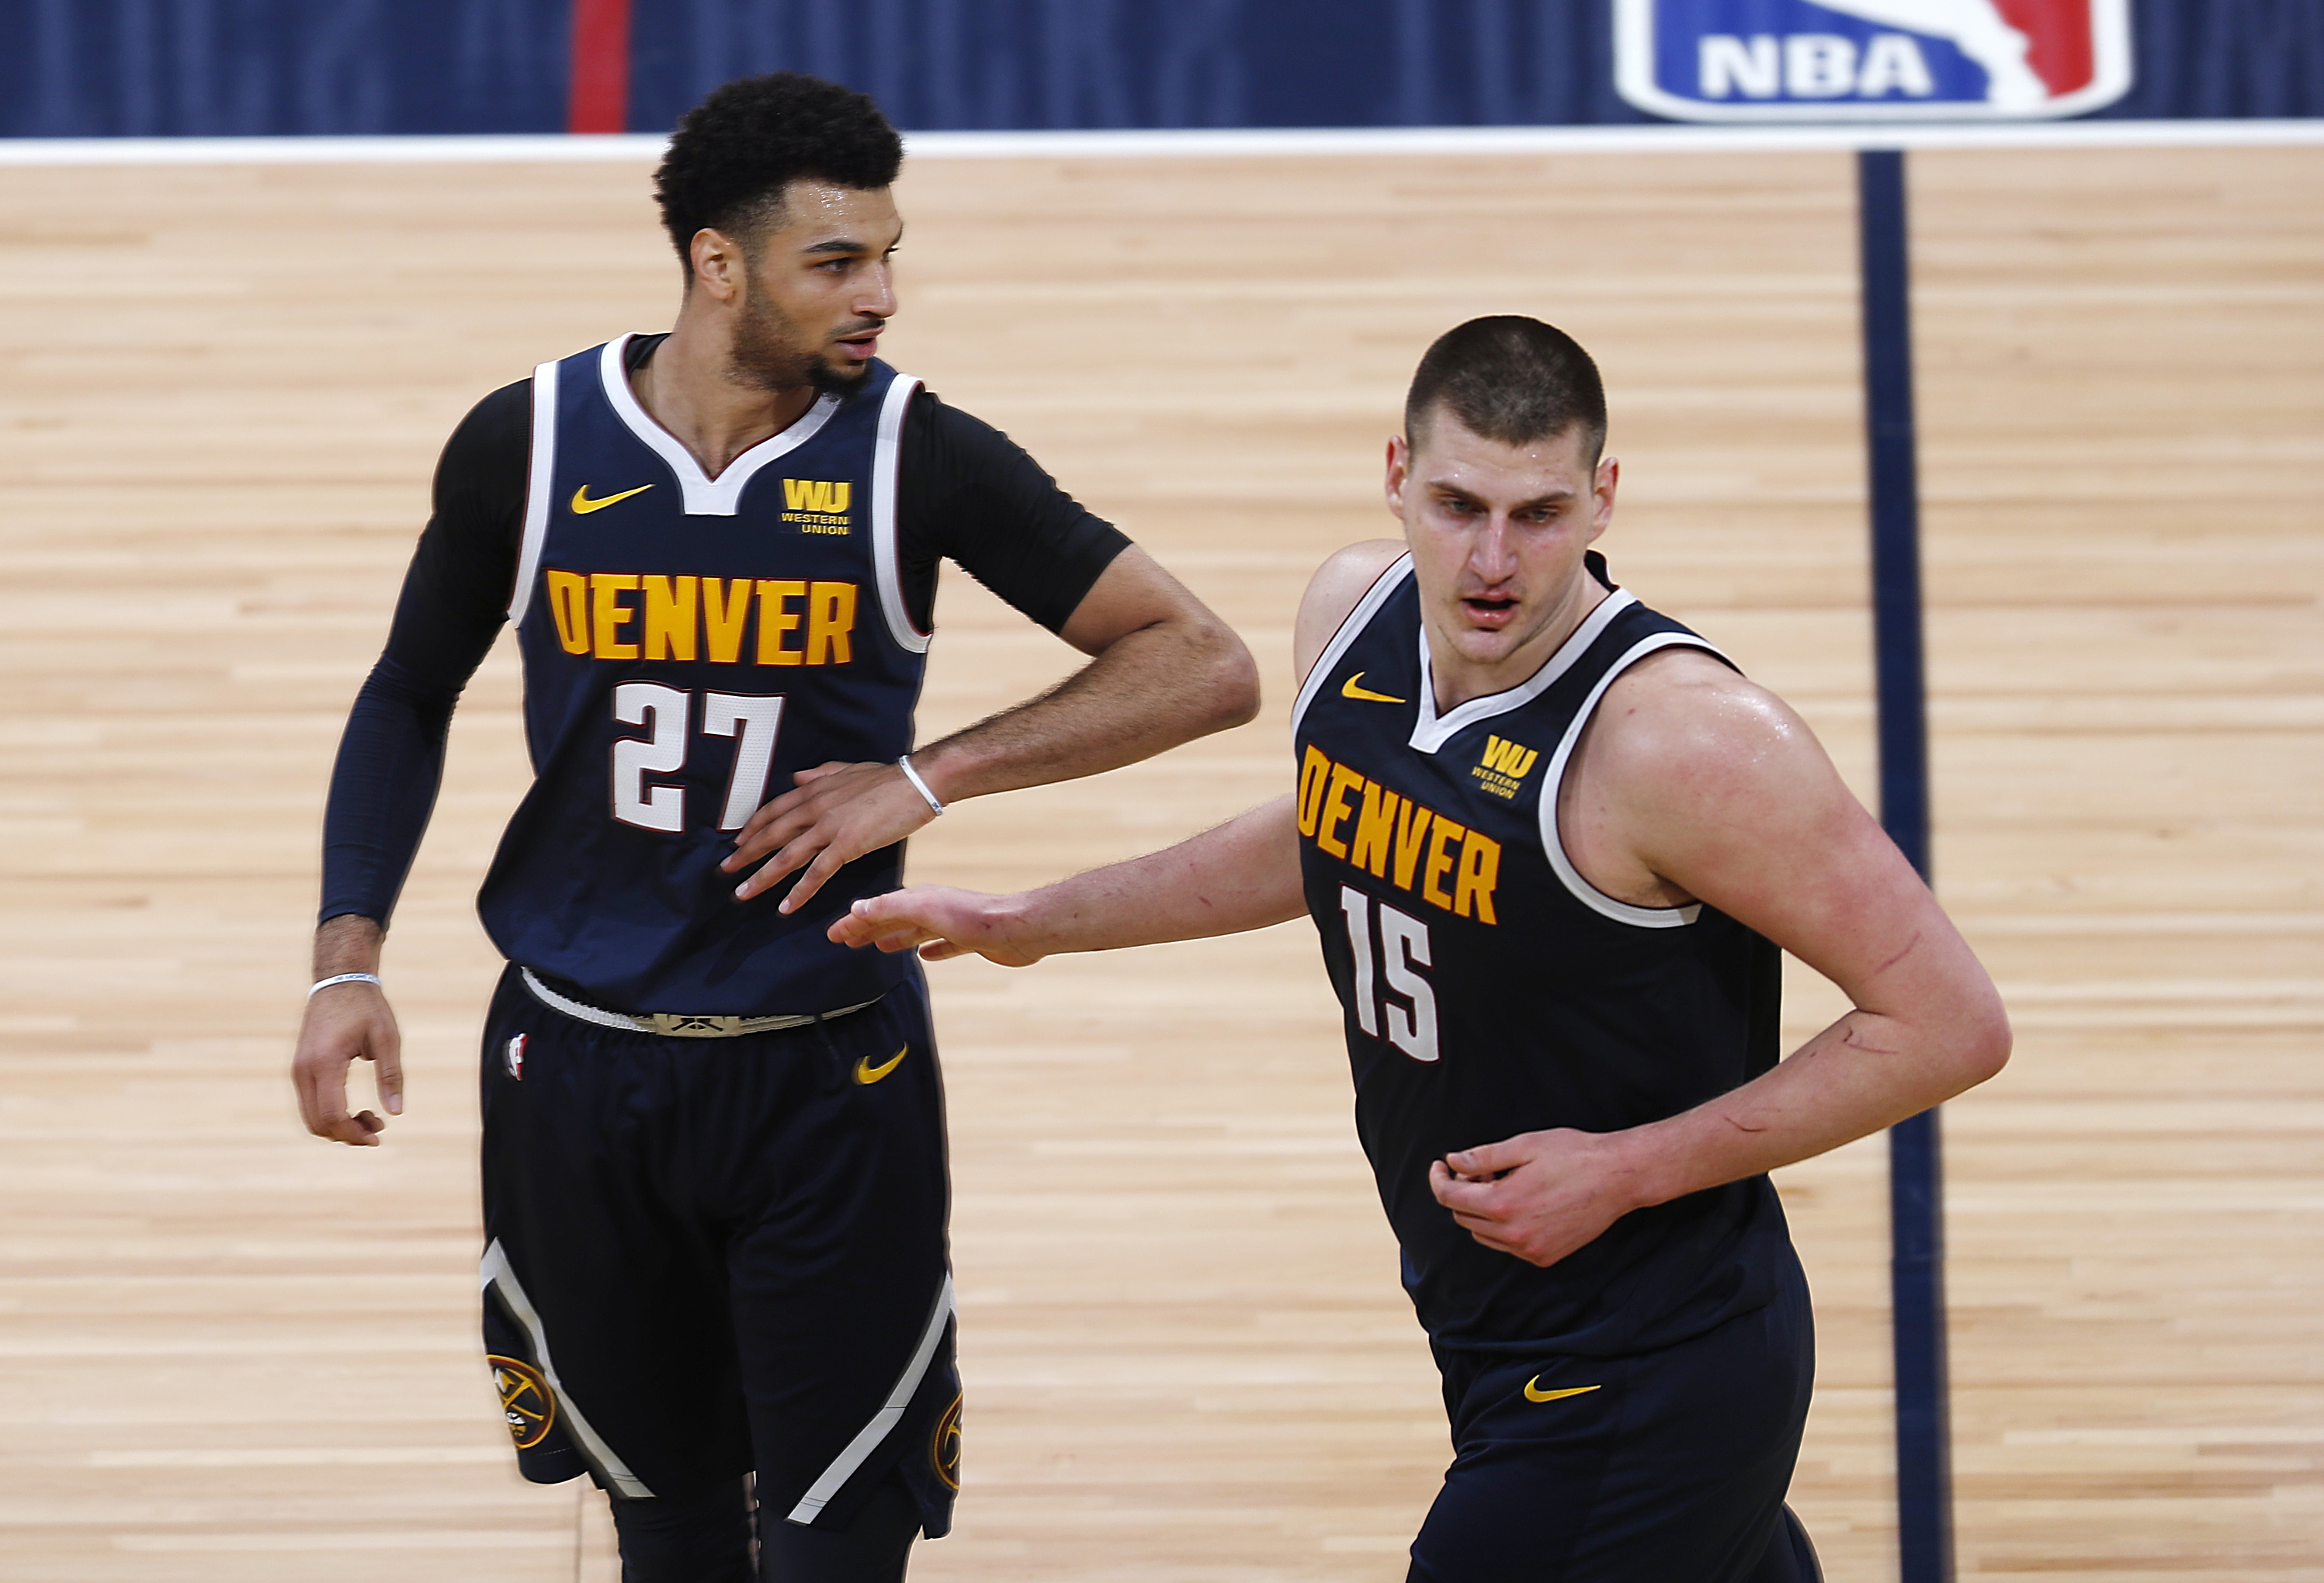 f82fcd2fff60 Nuggets move on to face Blazers in 2nd round of playoffs - Sentinel ...